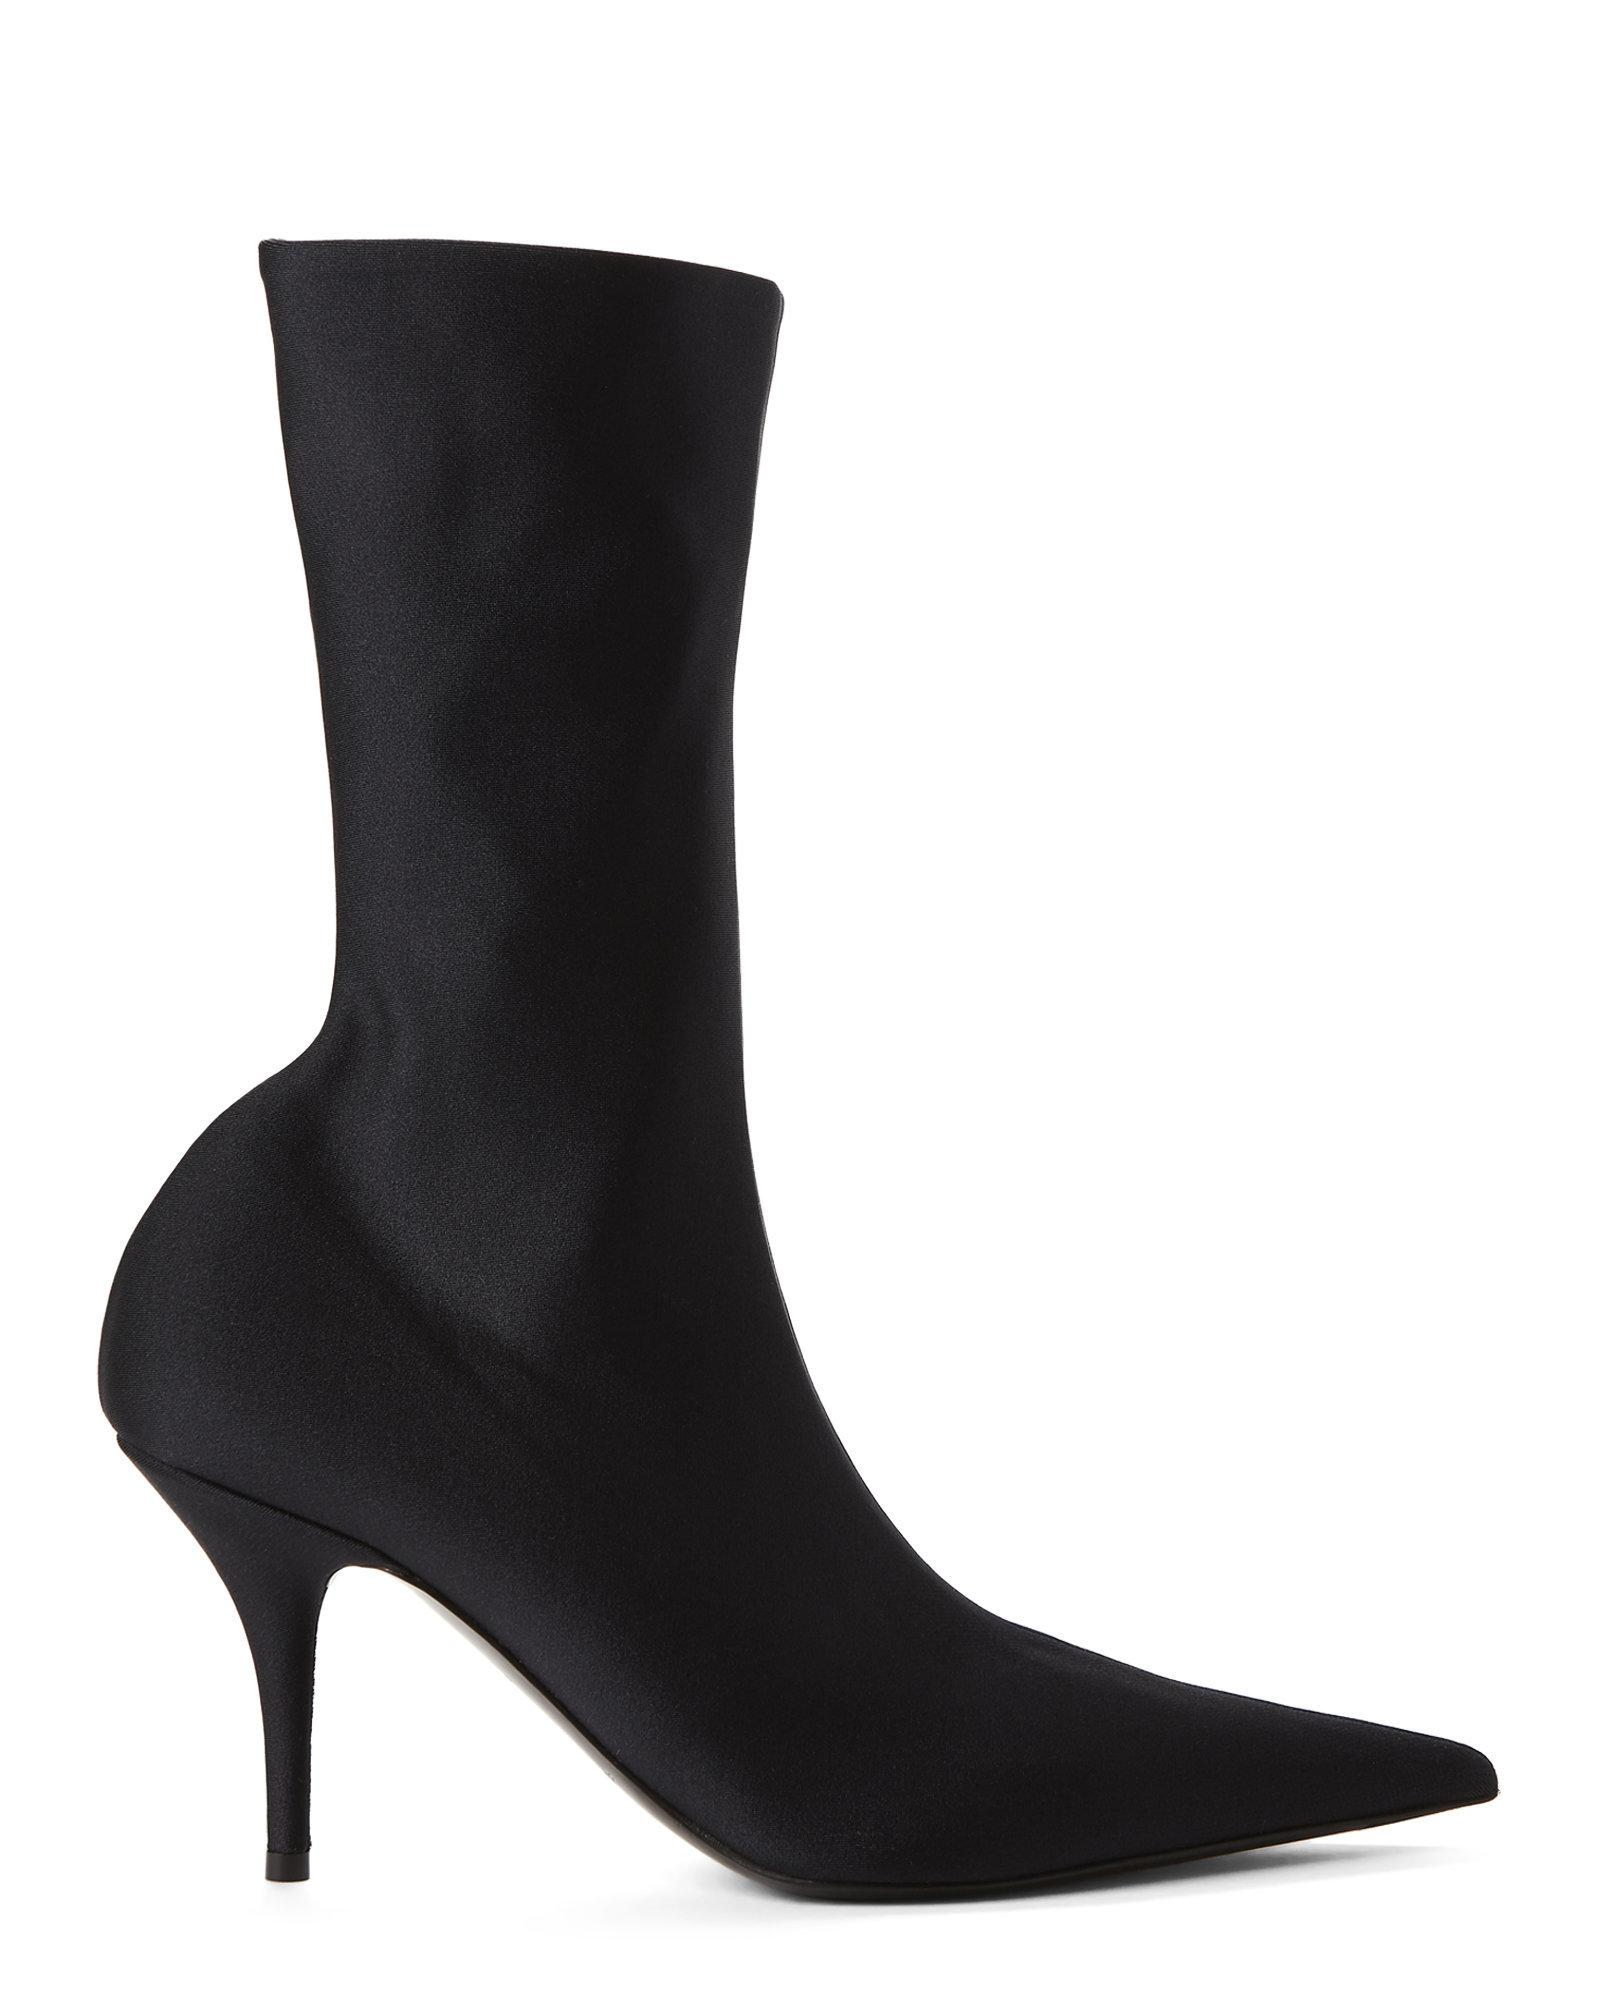 55c61ab83b236 Lyst - Balenciaga Stretch Pointed Toe Ankle Booties in Black